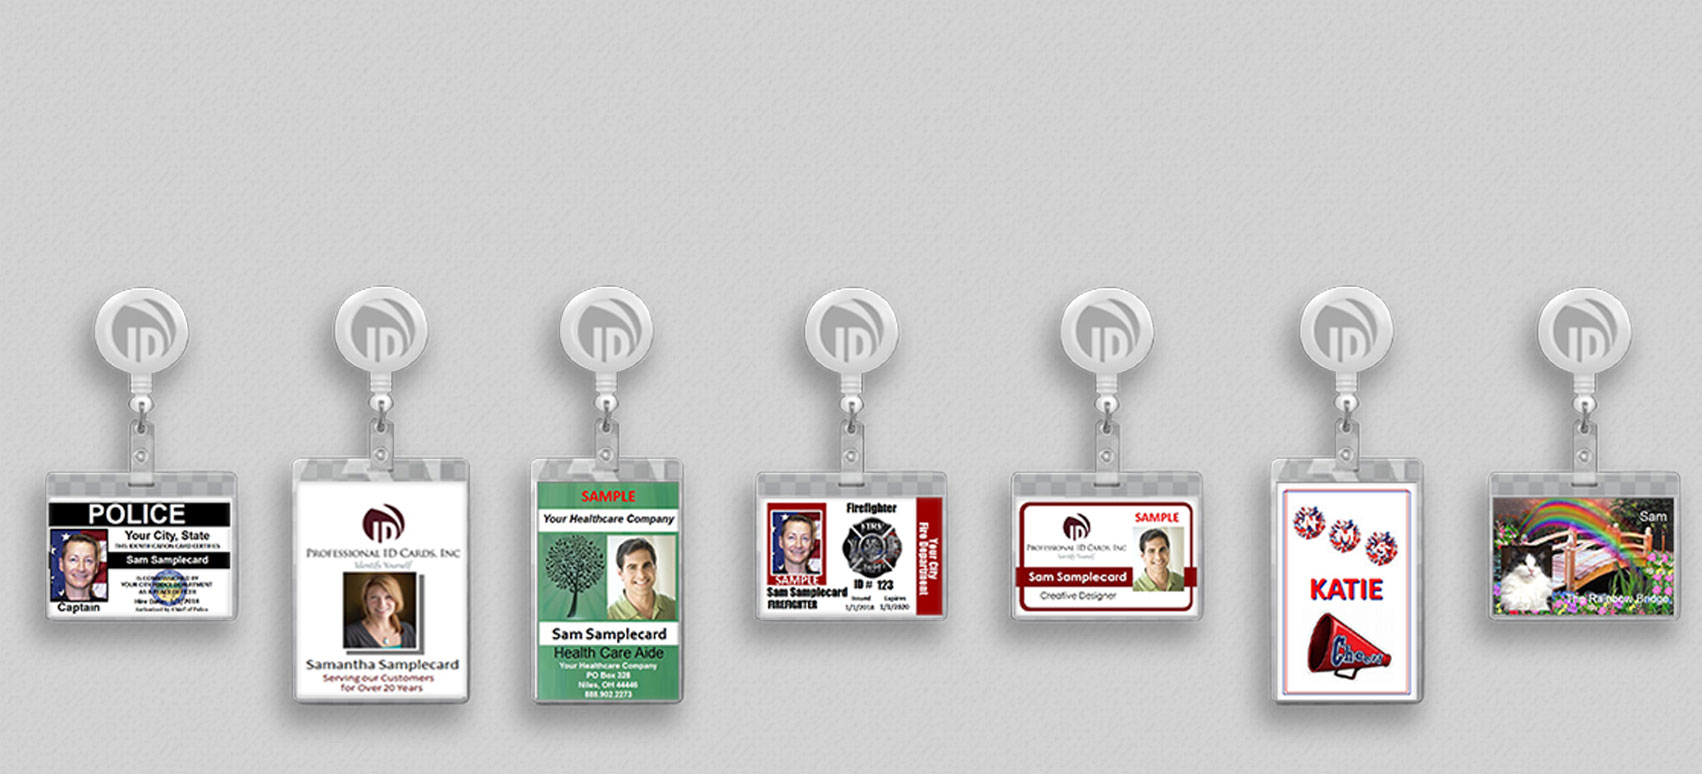 Vertical and Horizontal ID badge samples